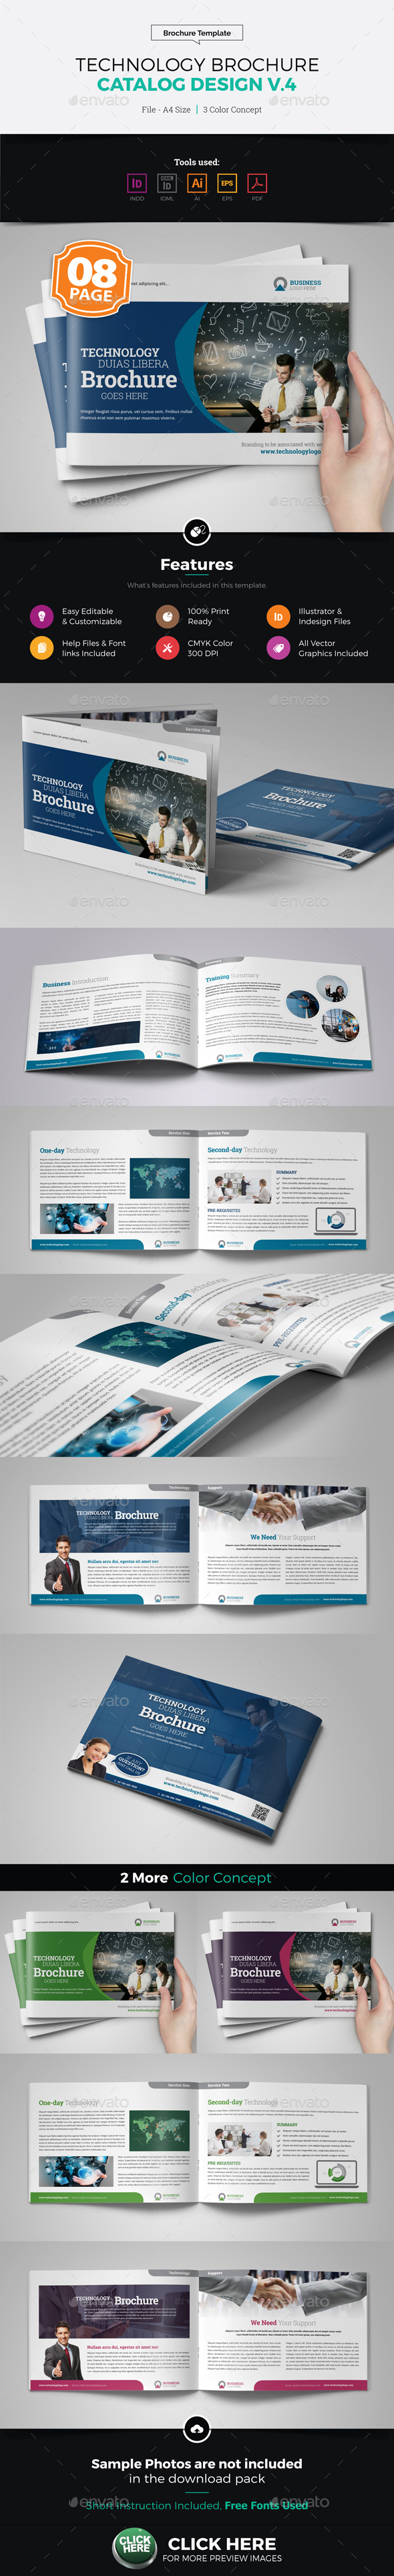 Technology Brochure Catalog Template v4 - Corporate Brochures